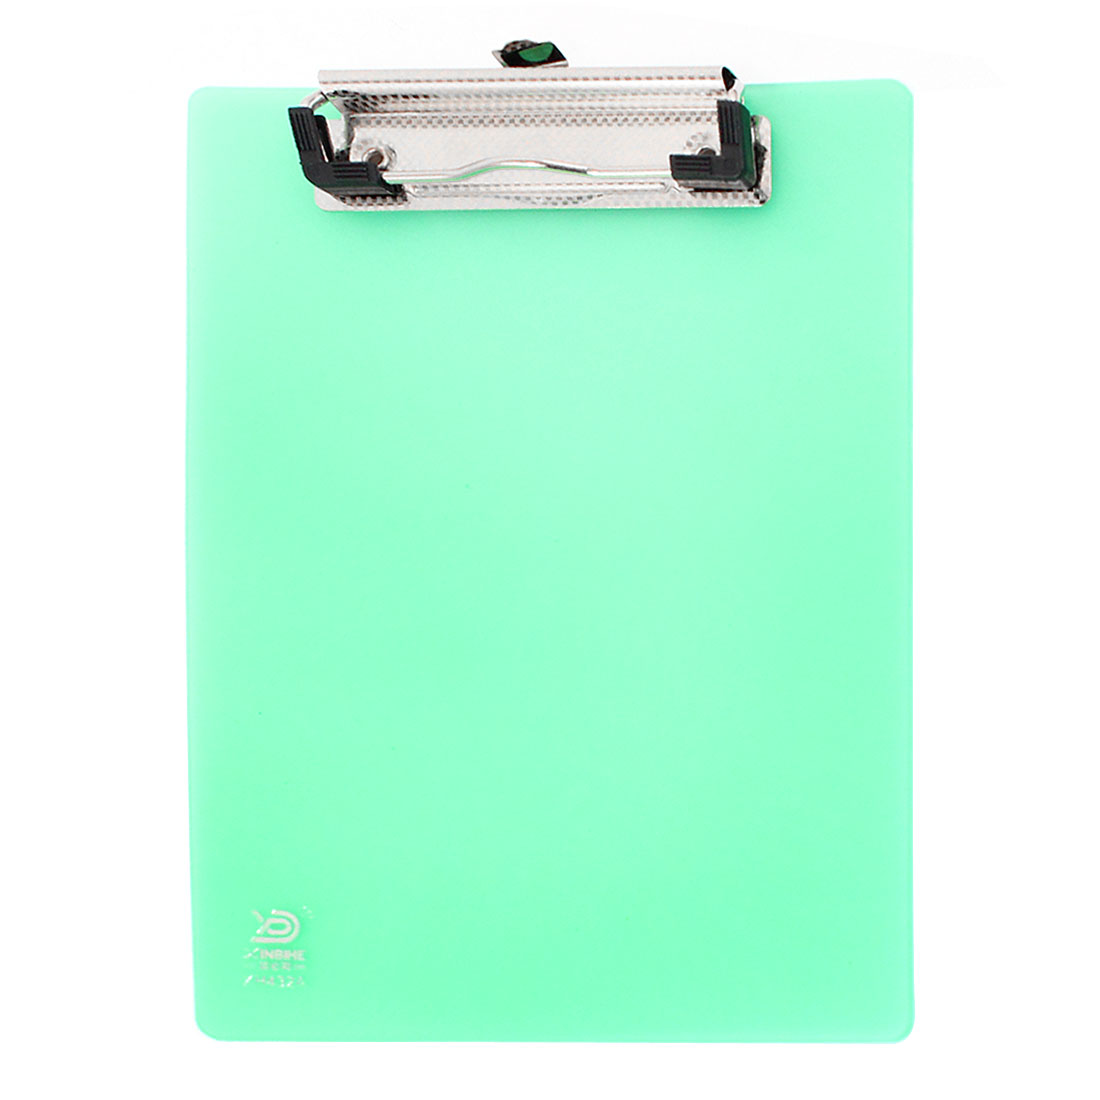 Office Plastic A5 Paper File Holding Clip Board 230 x 160mm Light Green